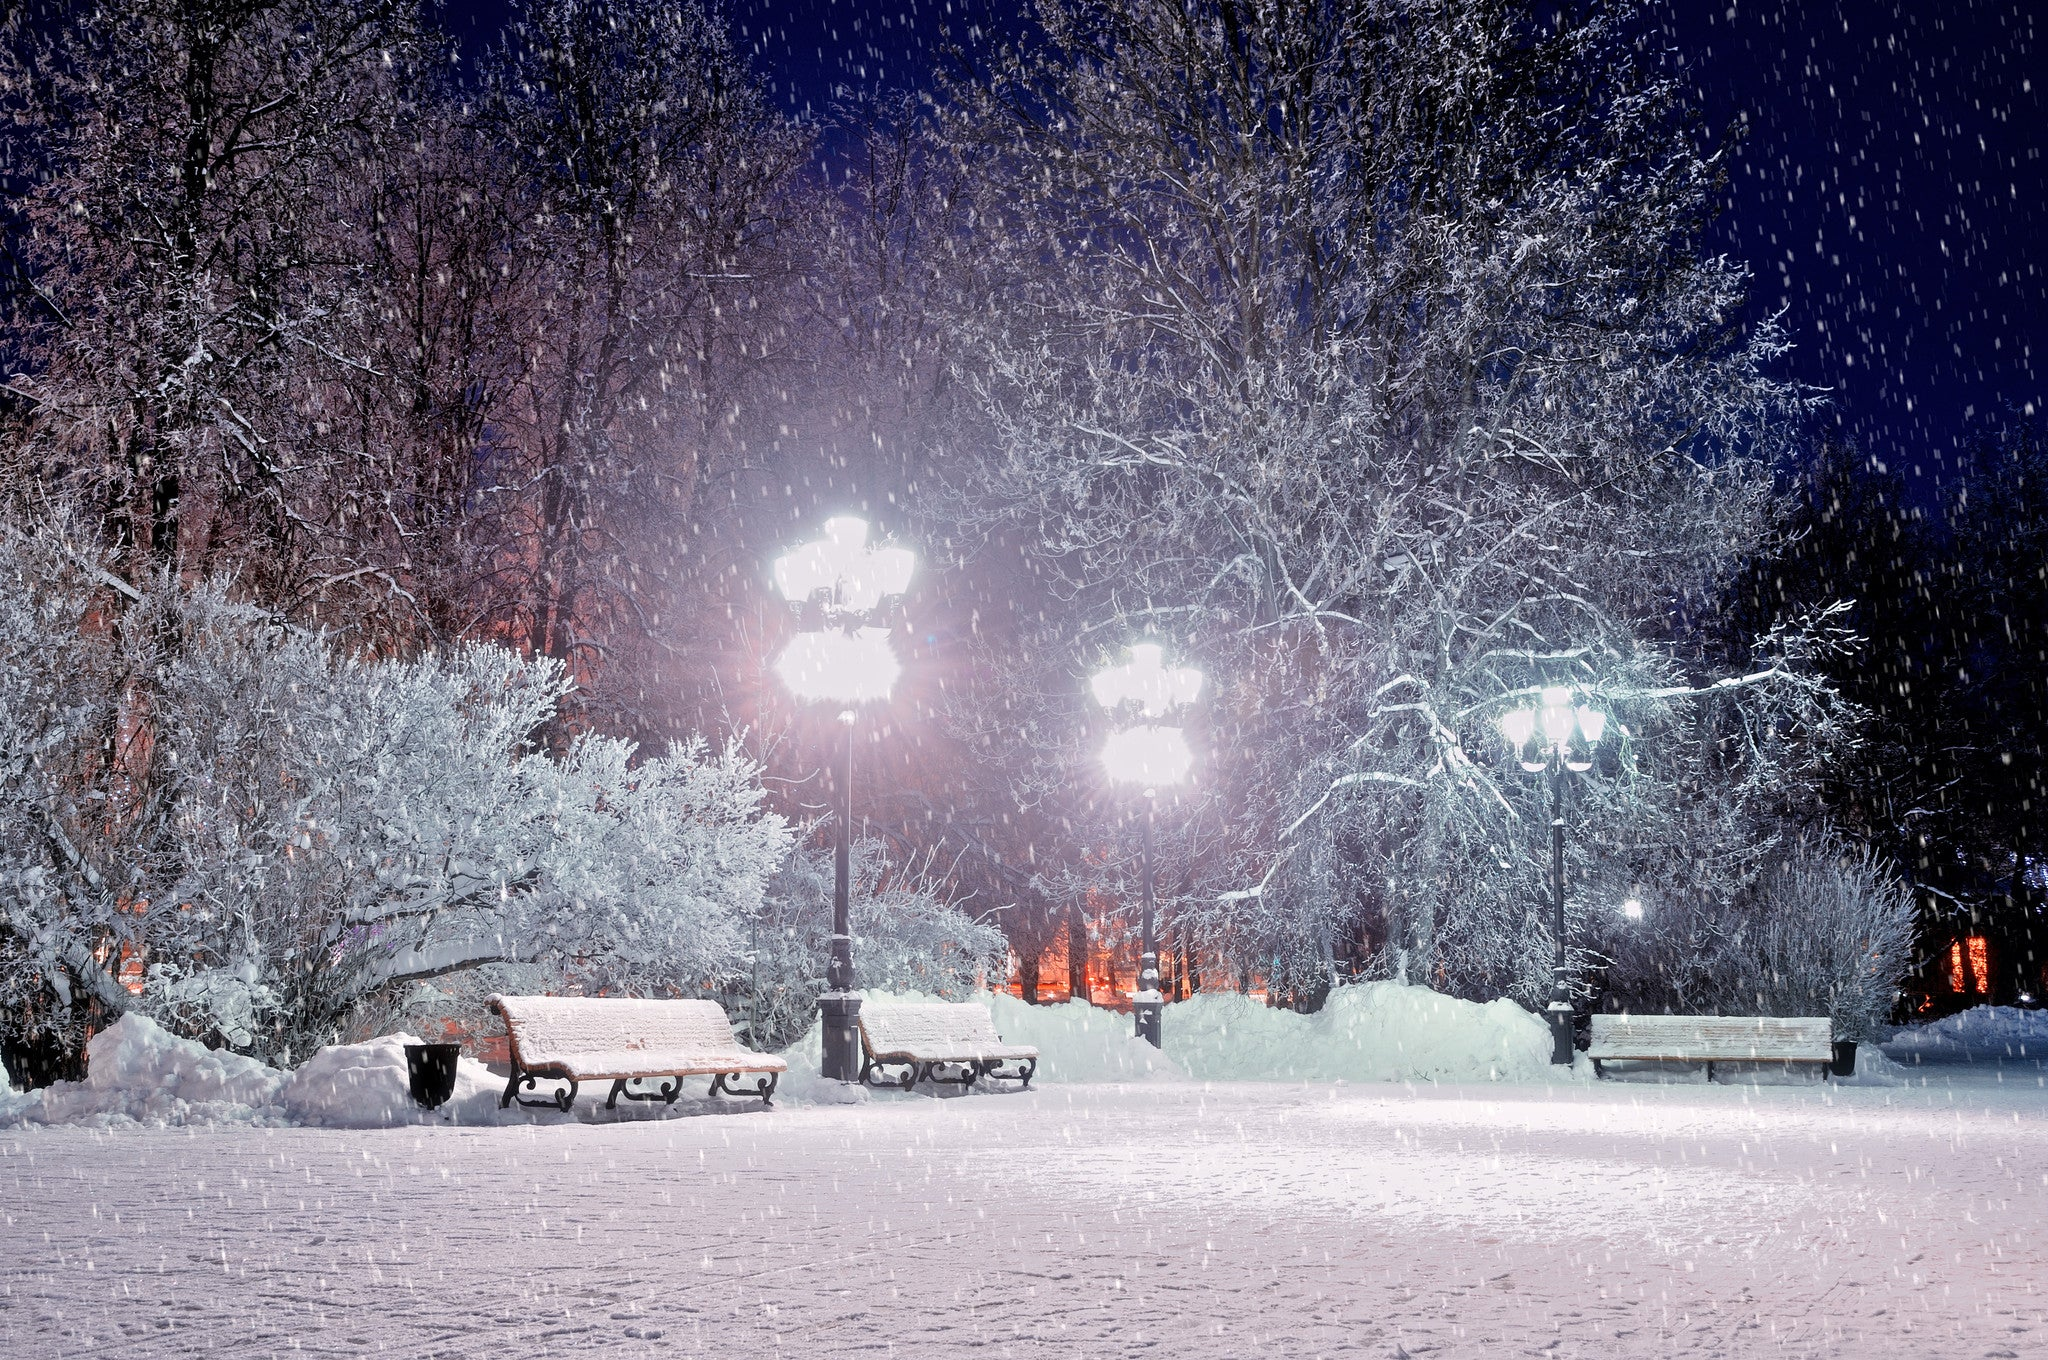 A Winter Evening in the Park